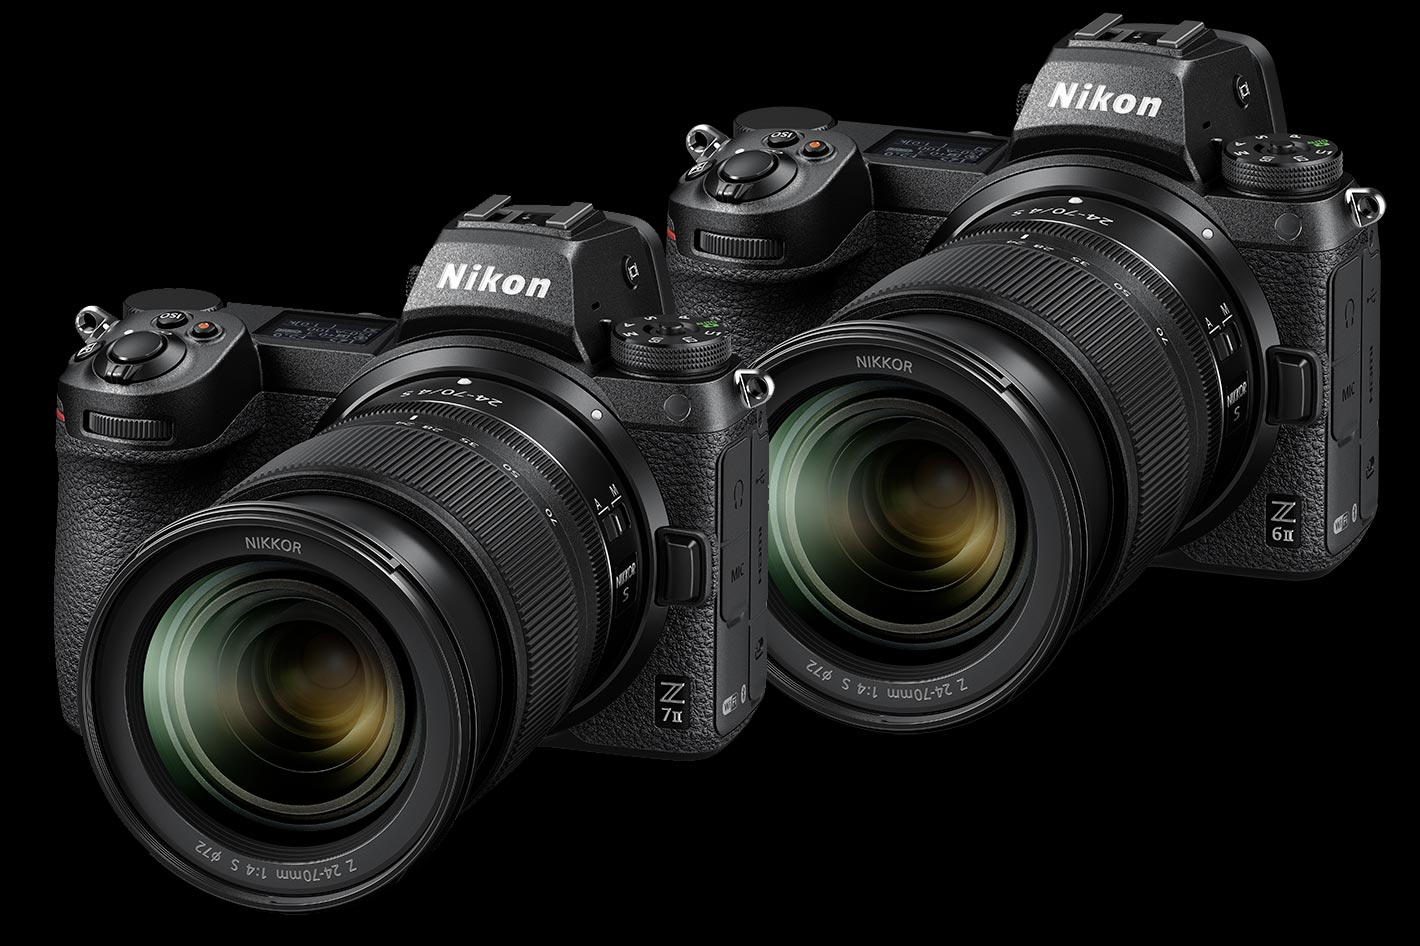 Nikon Z 7II and Z 6II offer advanced video capabilities